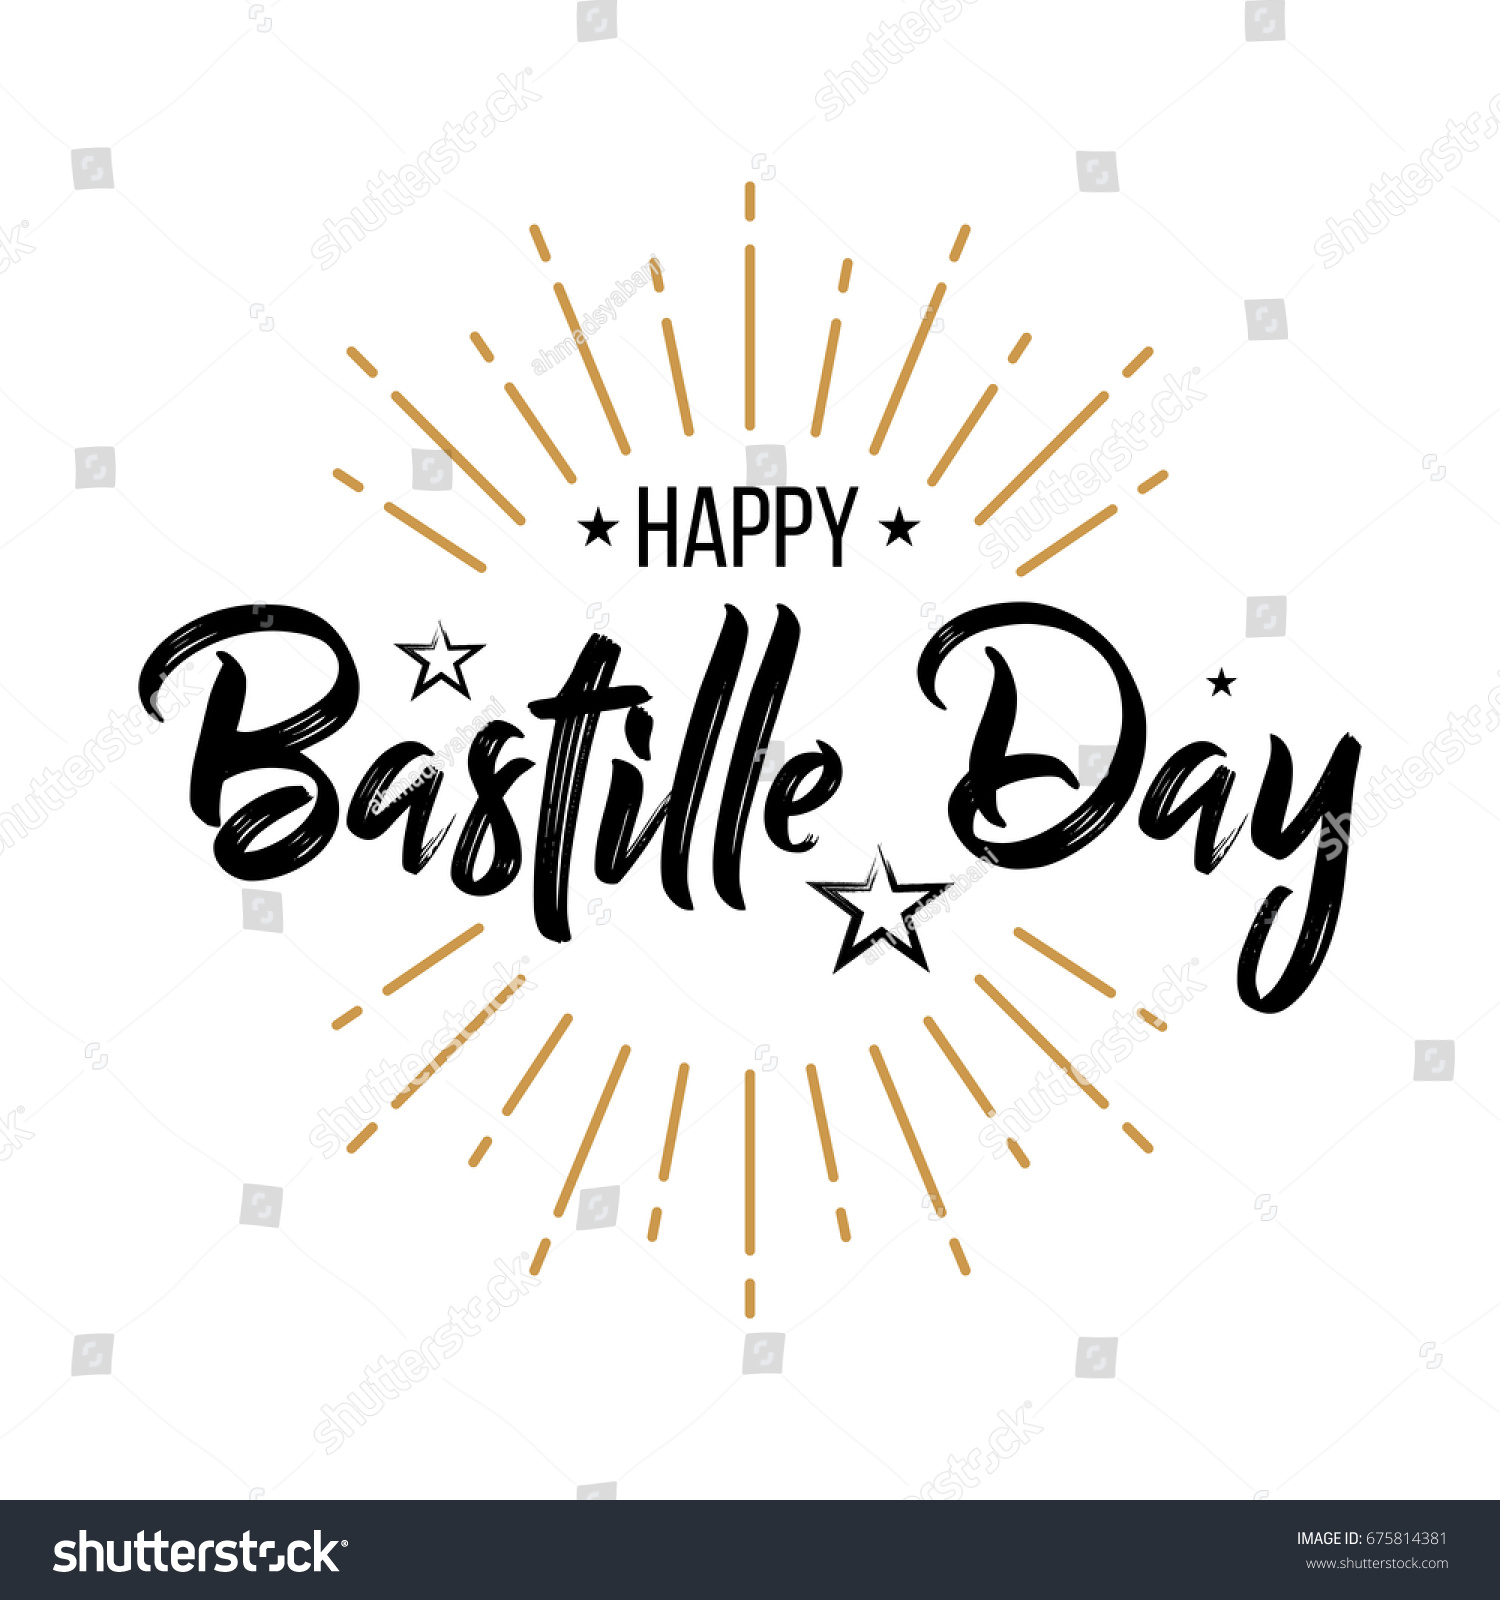 Happy bastille day vintage perfect advertising stock vector 2018 happy bastille day vintage perfect for advertising poster or greeting card for the m4hsunfo